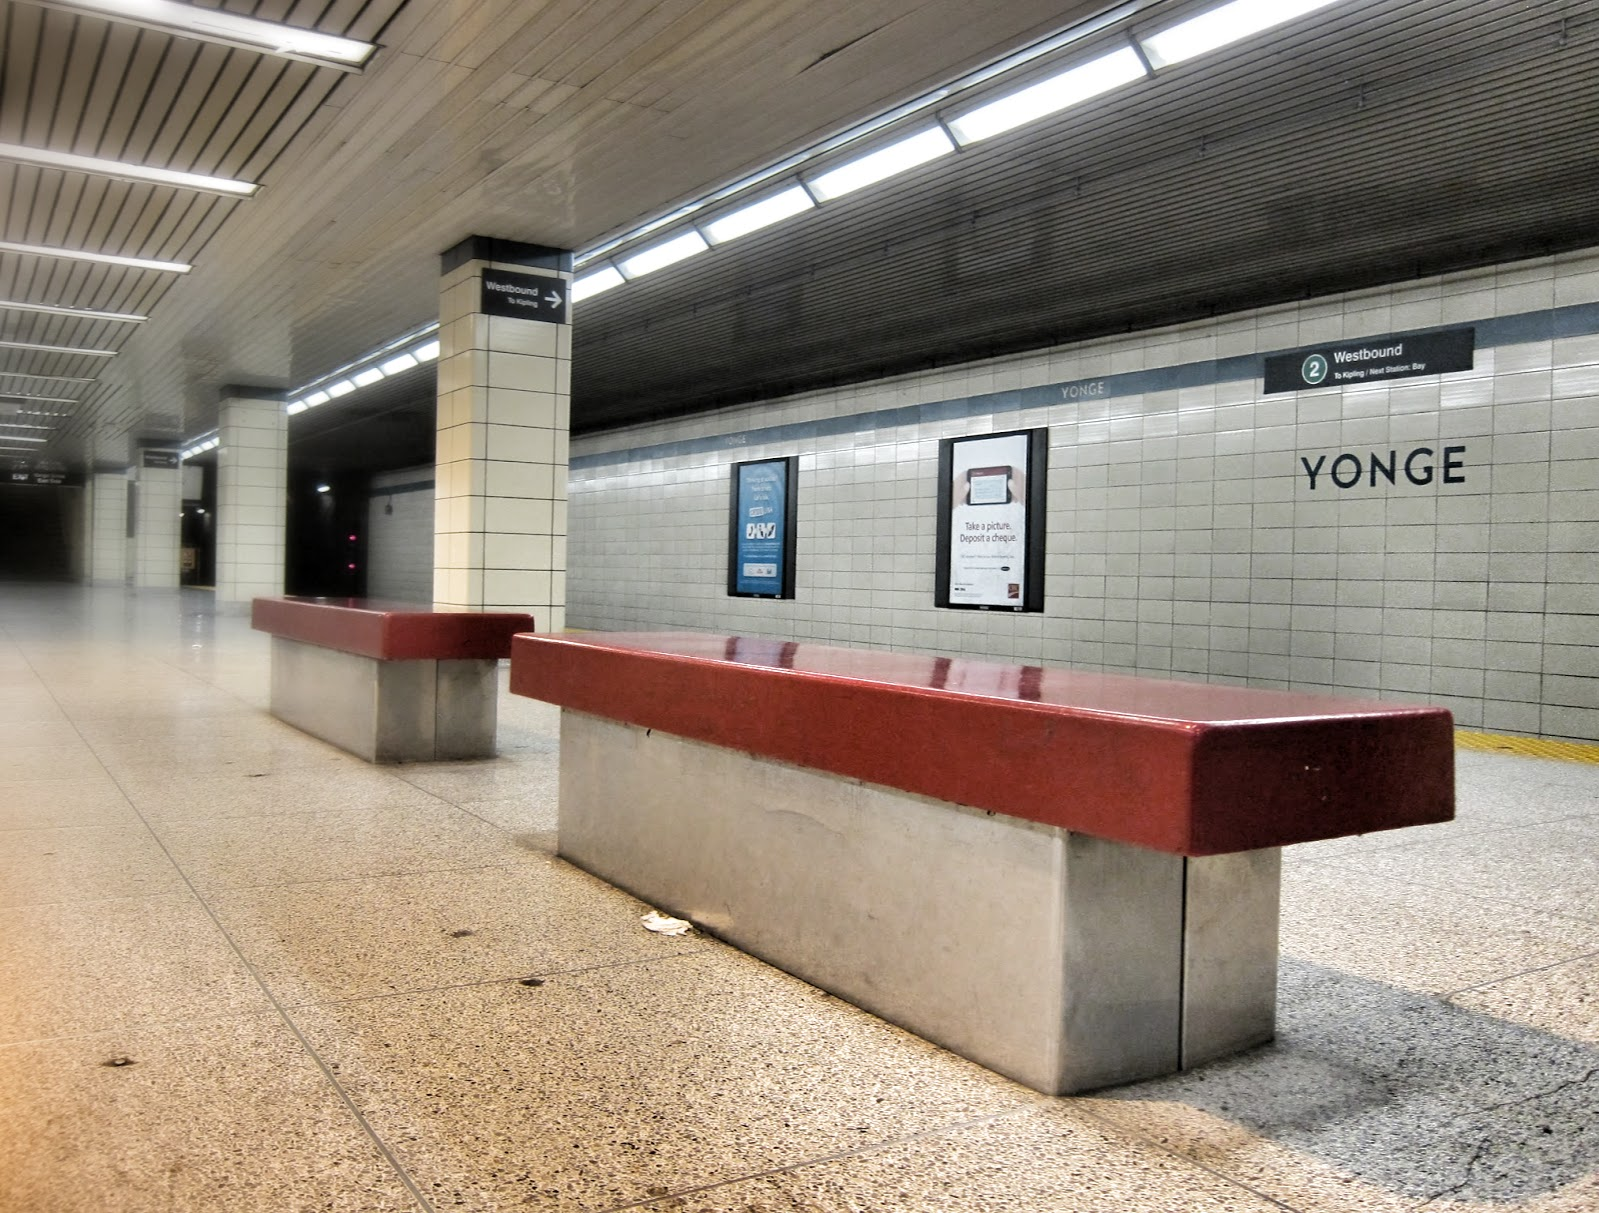 Yonge station, Bloor-Danforth line.